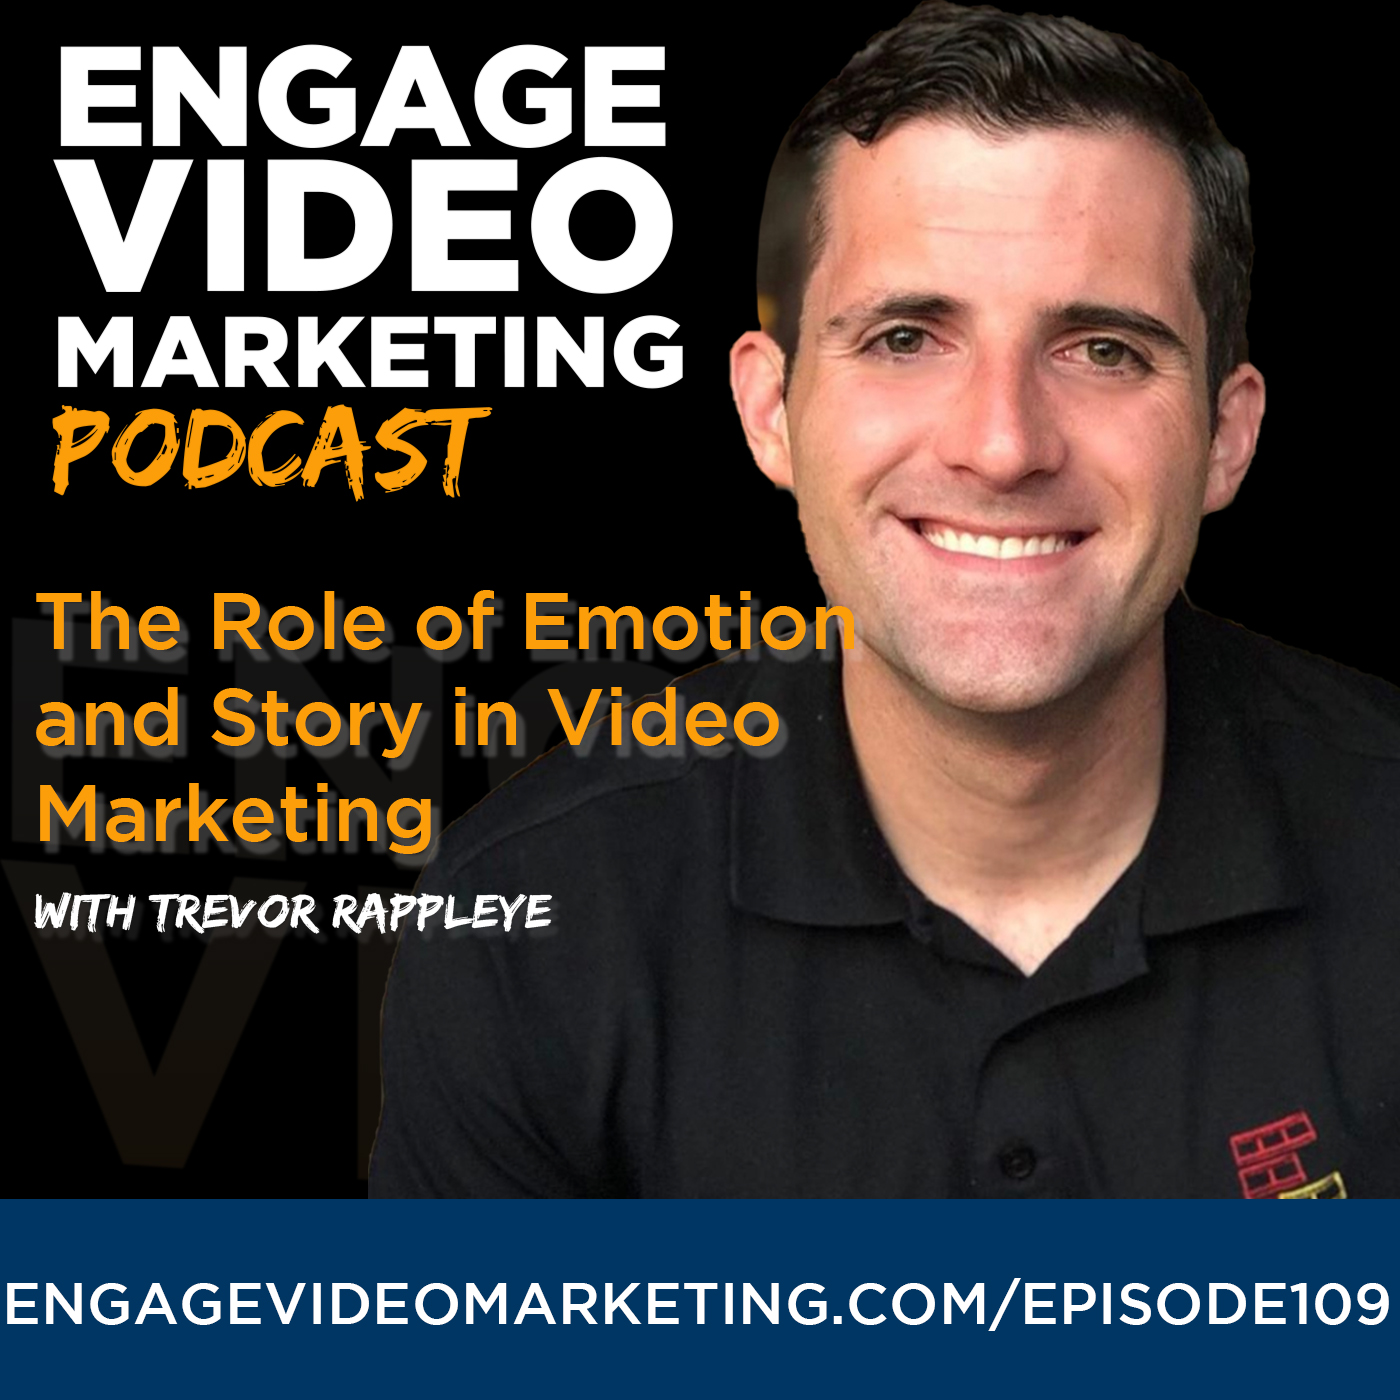 The Role of Emotion and Storytelling in Video Marketing with Trevor Rappleye